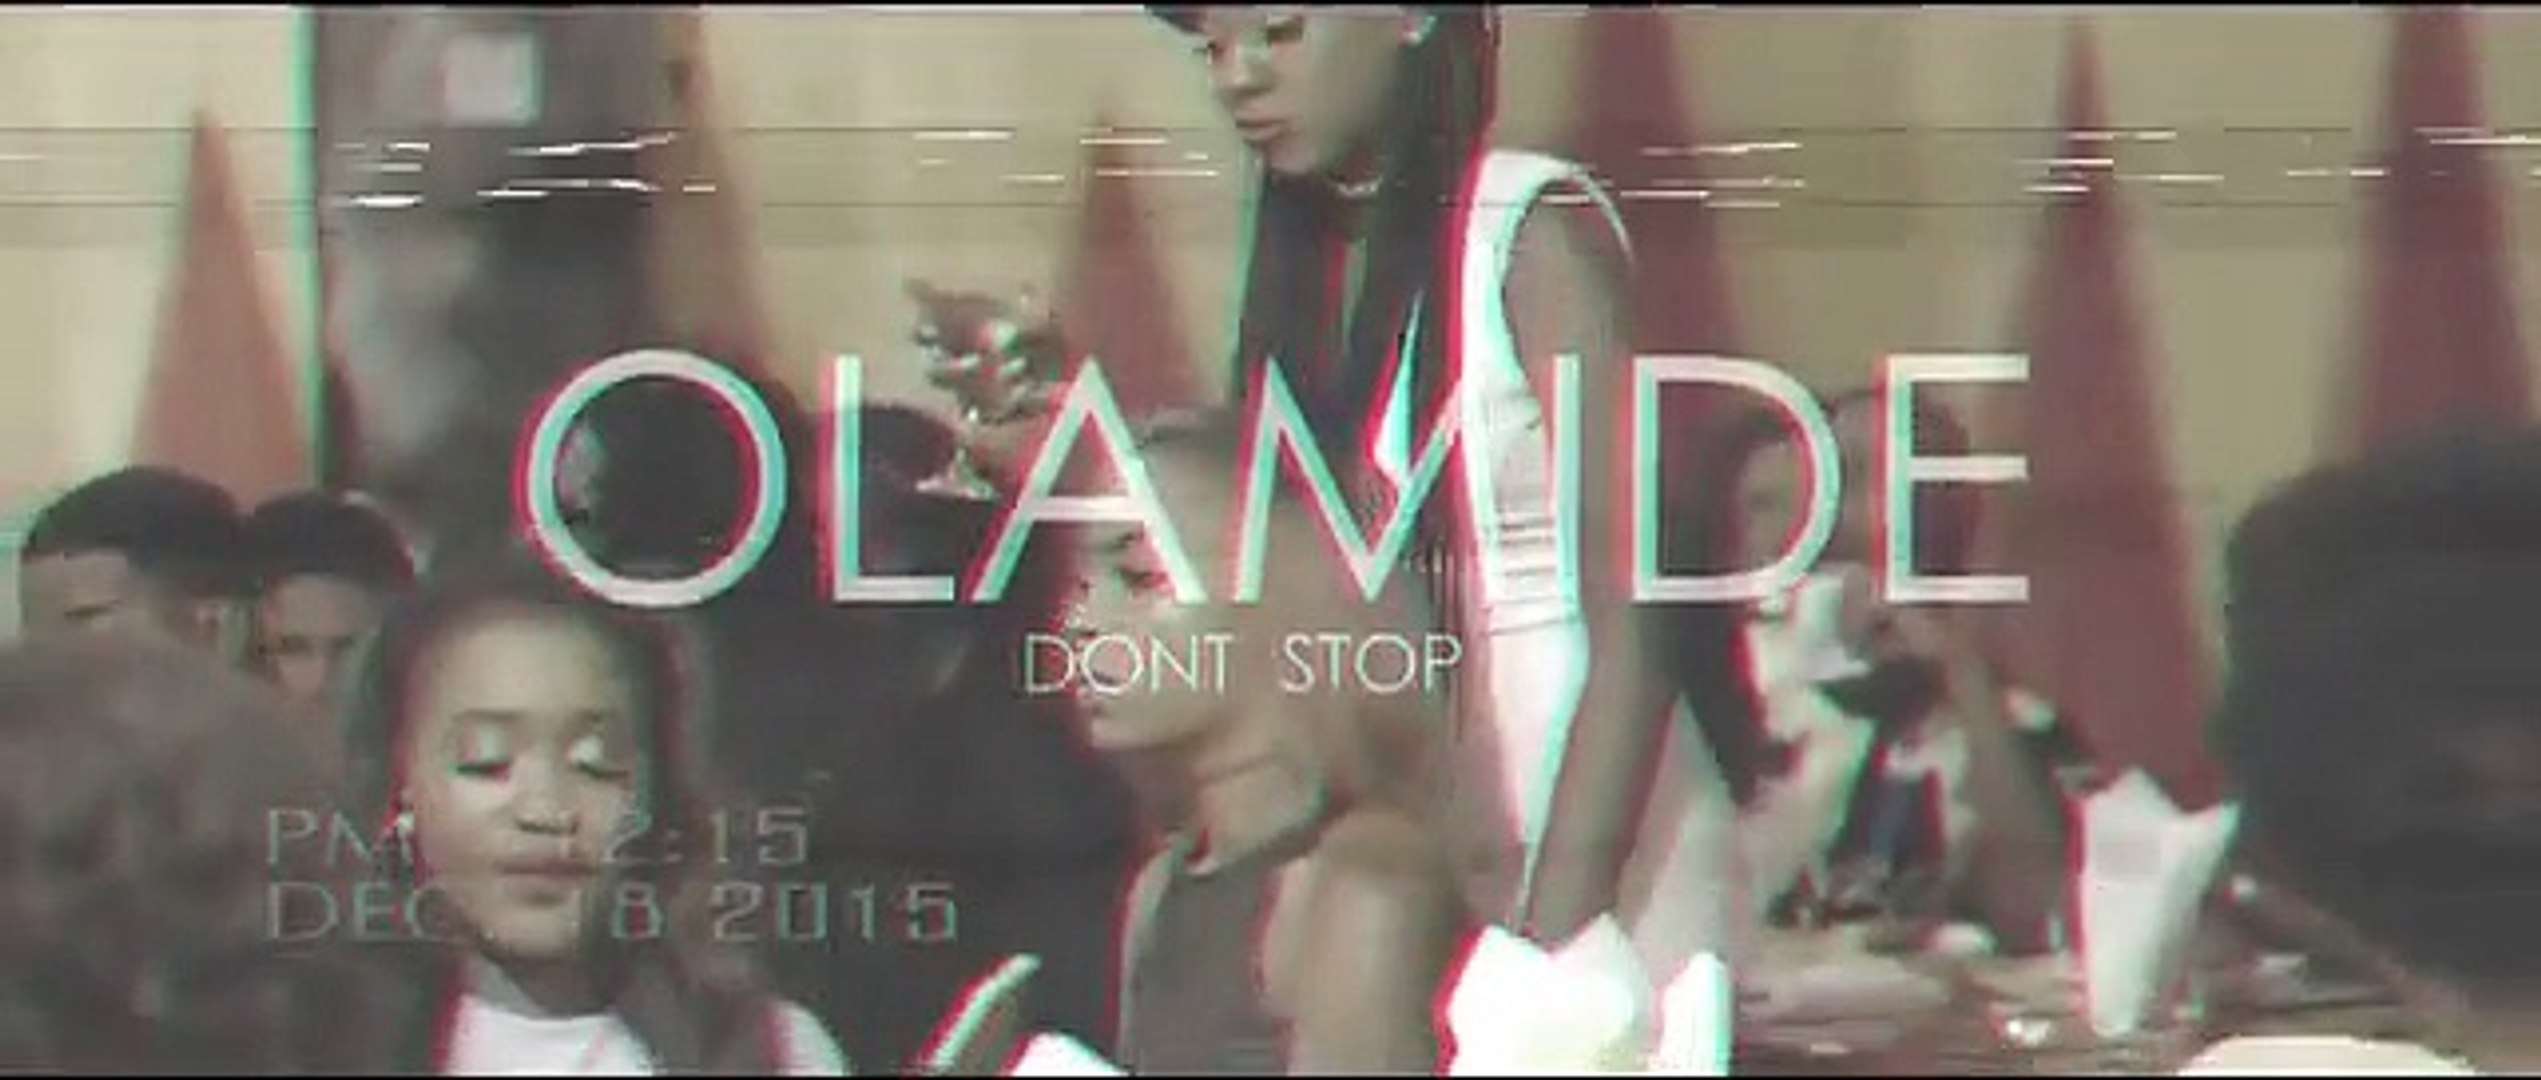 Olamide - Dont Stop [Official Video] HD